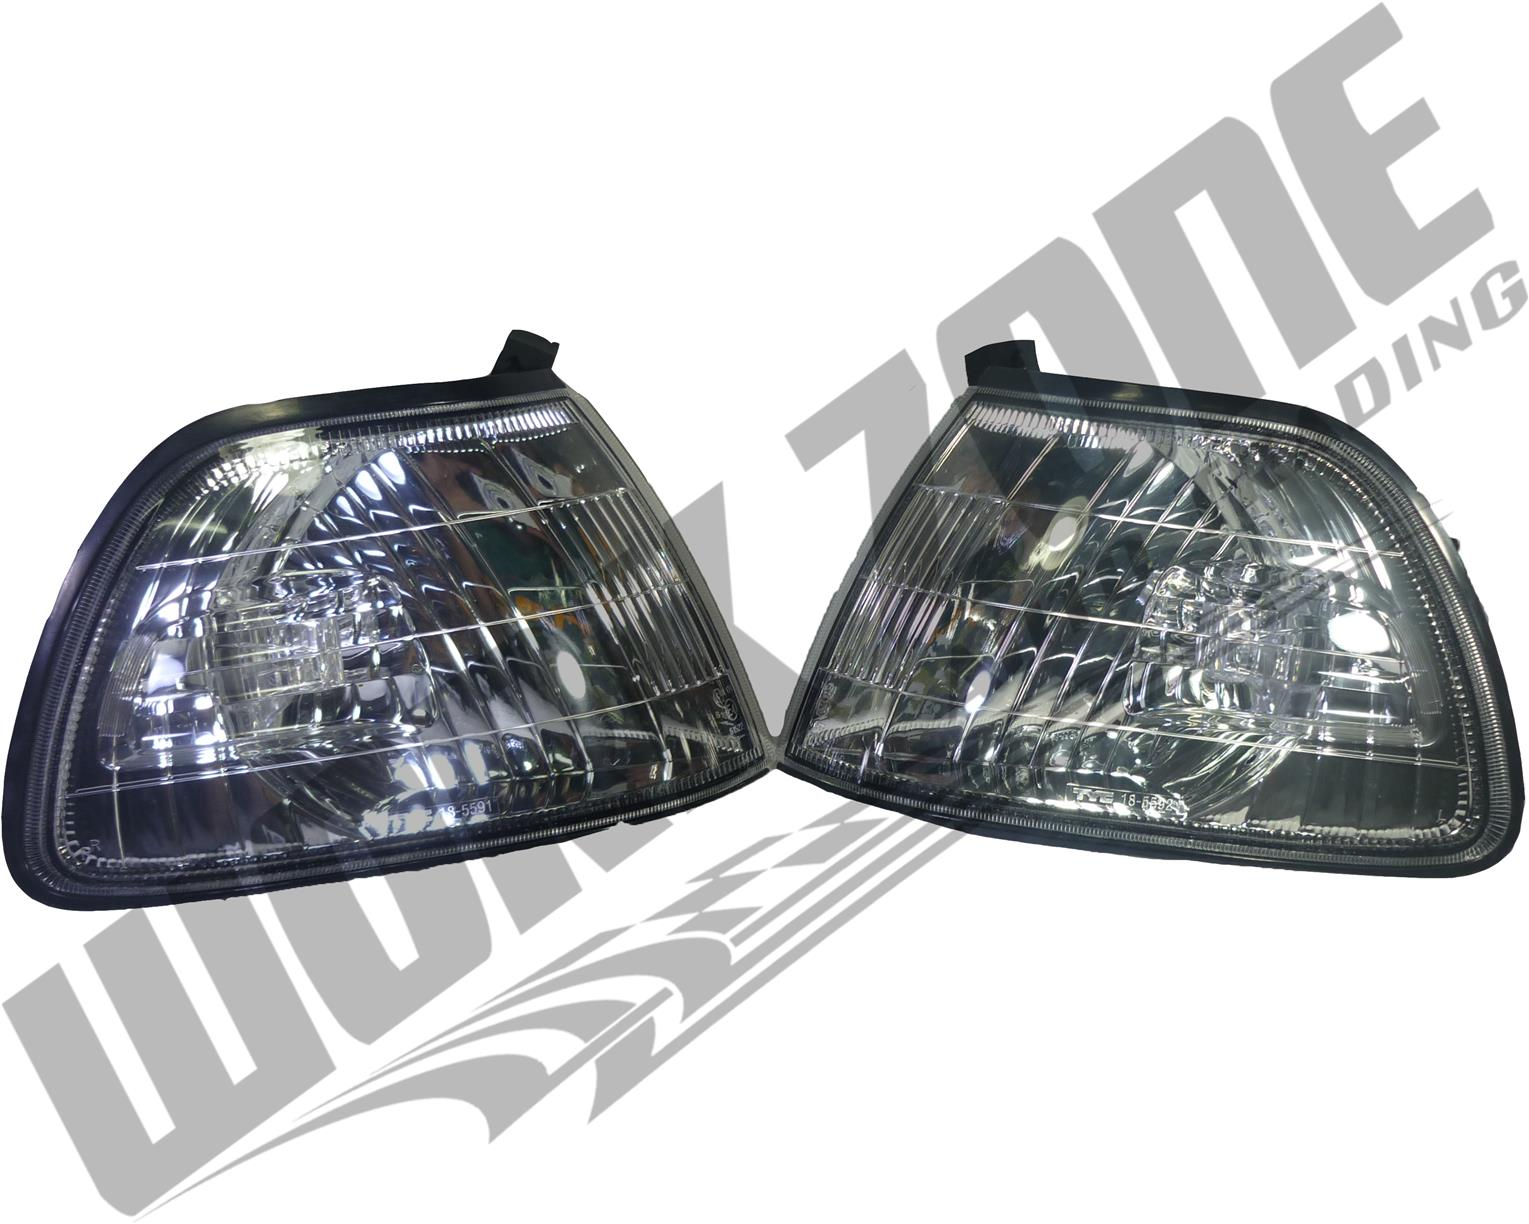 TOYOTA UNSER 2000 FRONT ANGLE SIGNAL LAMP SET